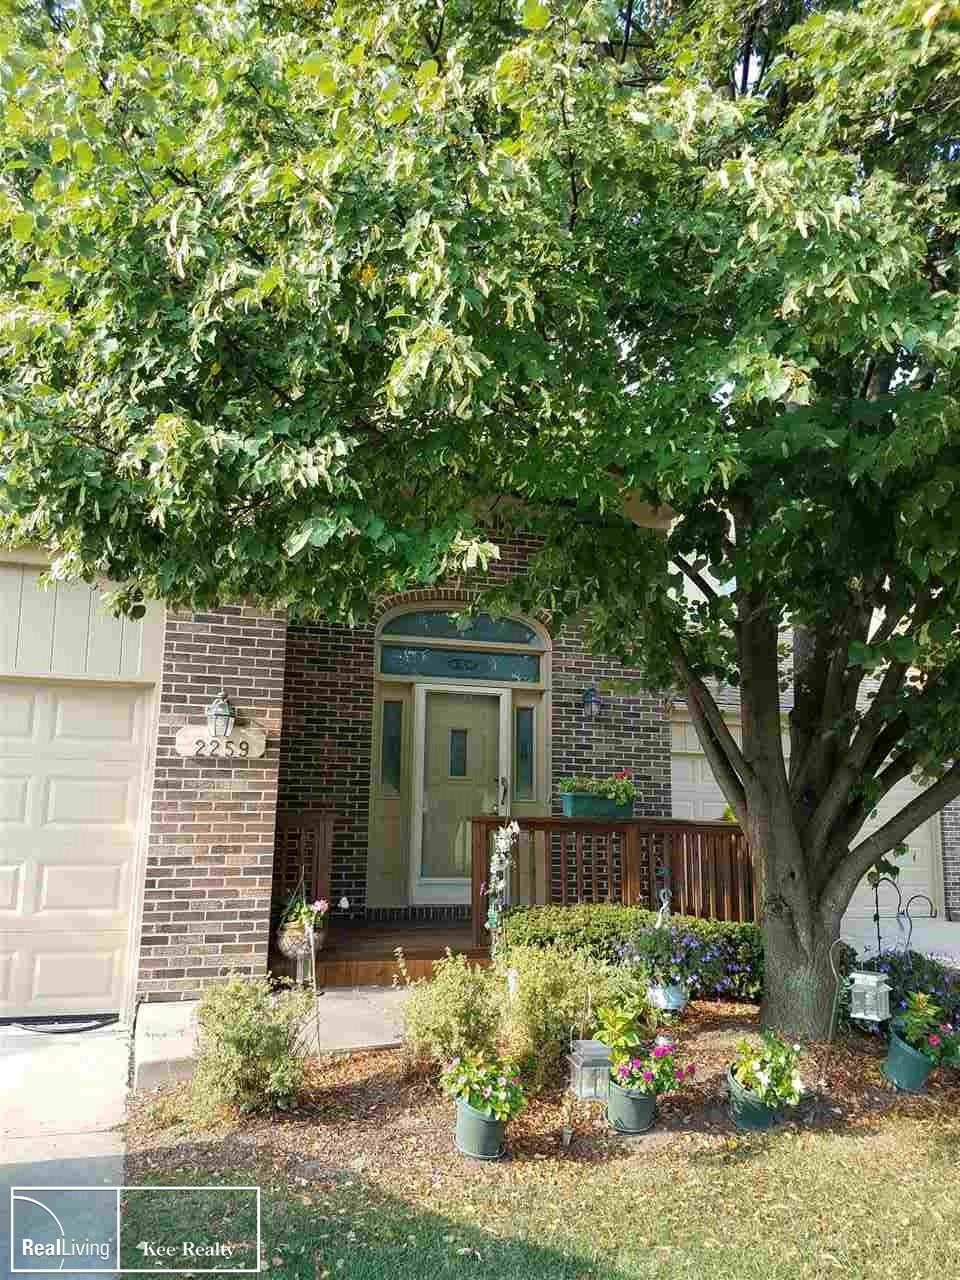 Photo of 2259 Crystal Dr, Rochester Hills, MI 48309 (MLS # 50005461)